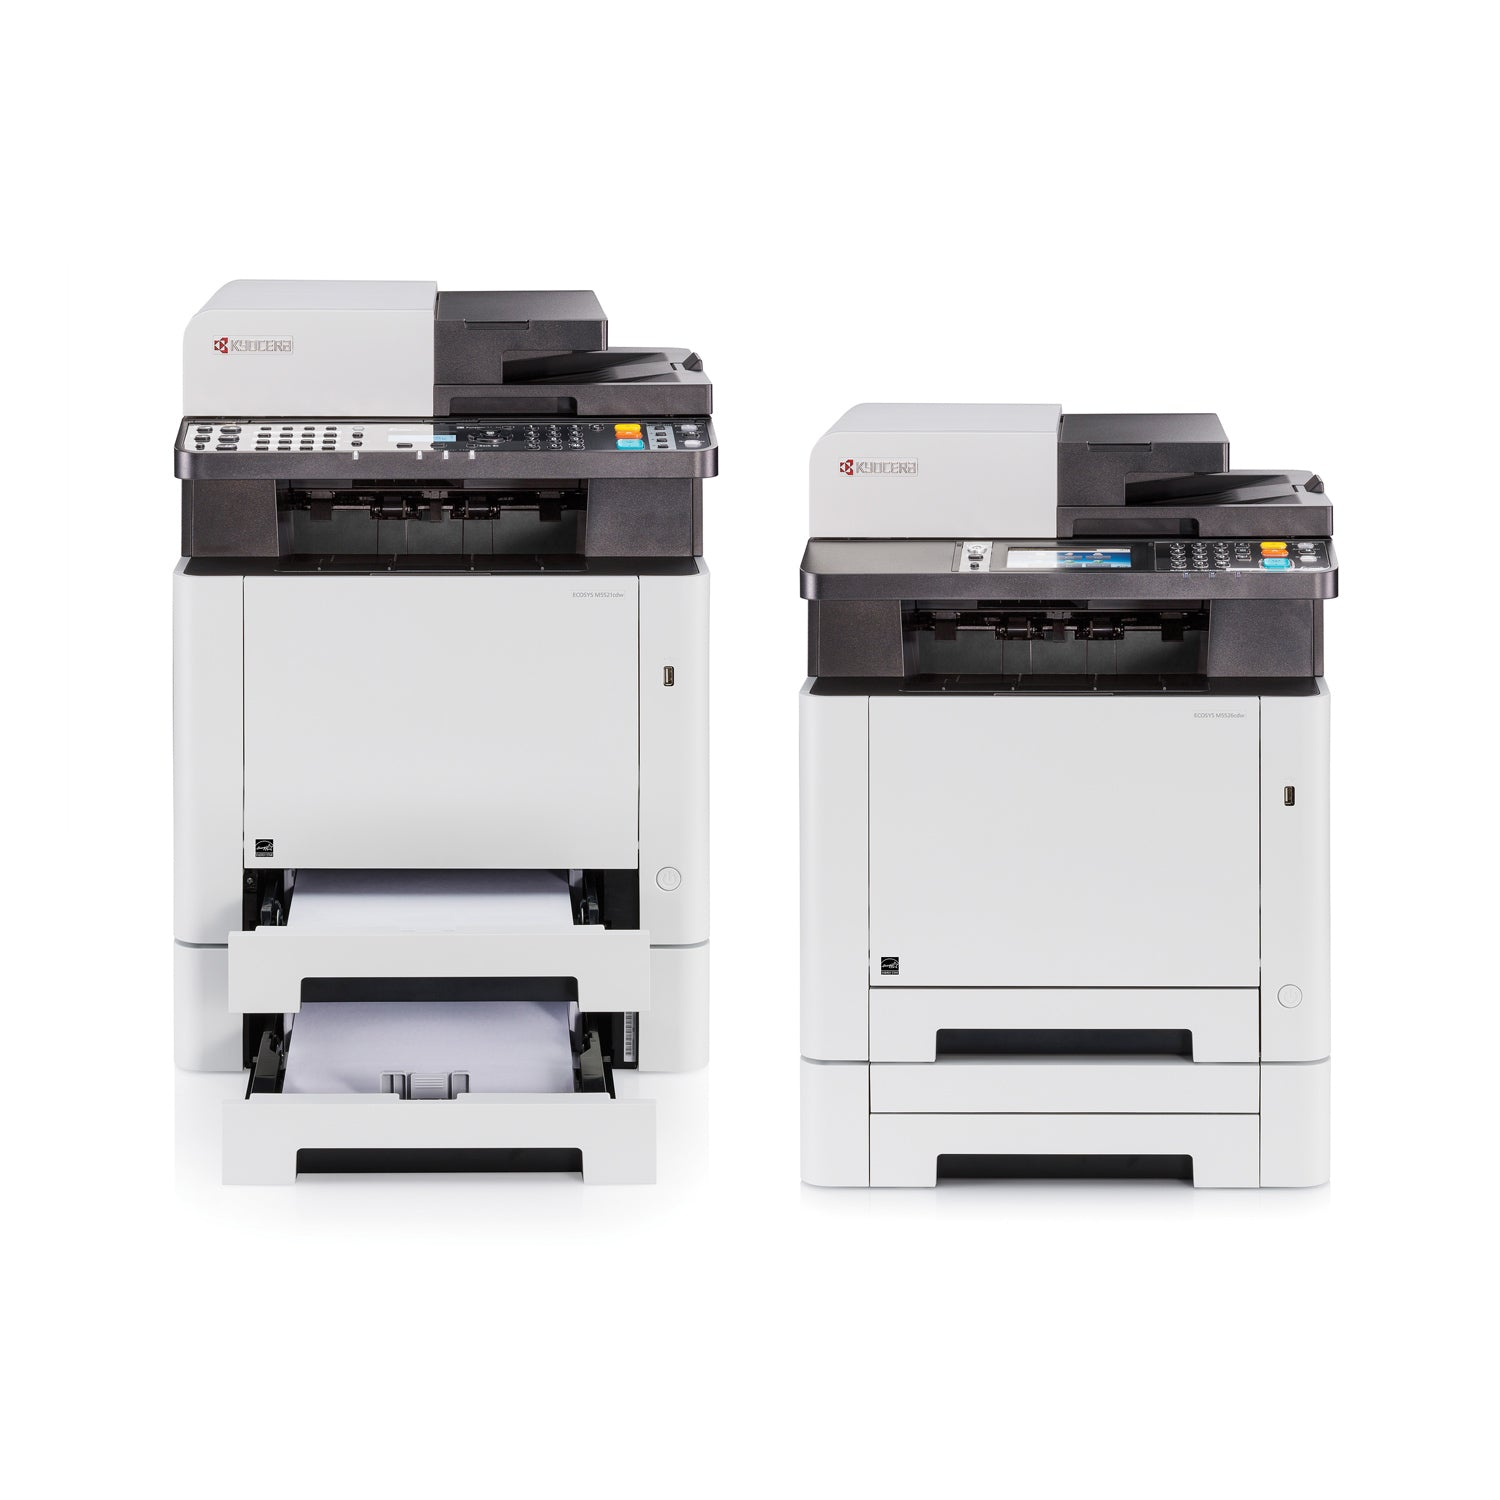 ECOSYS M5521cdw and ECOSYS M5526cdw Series